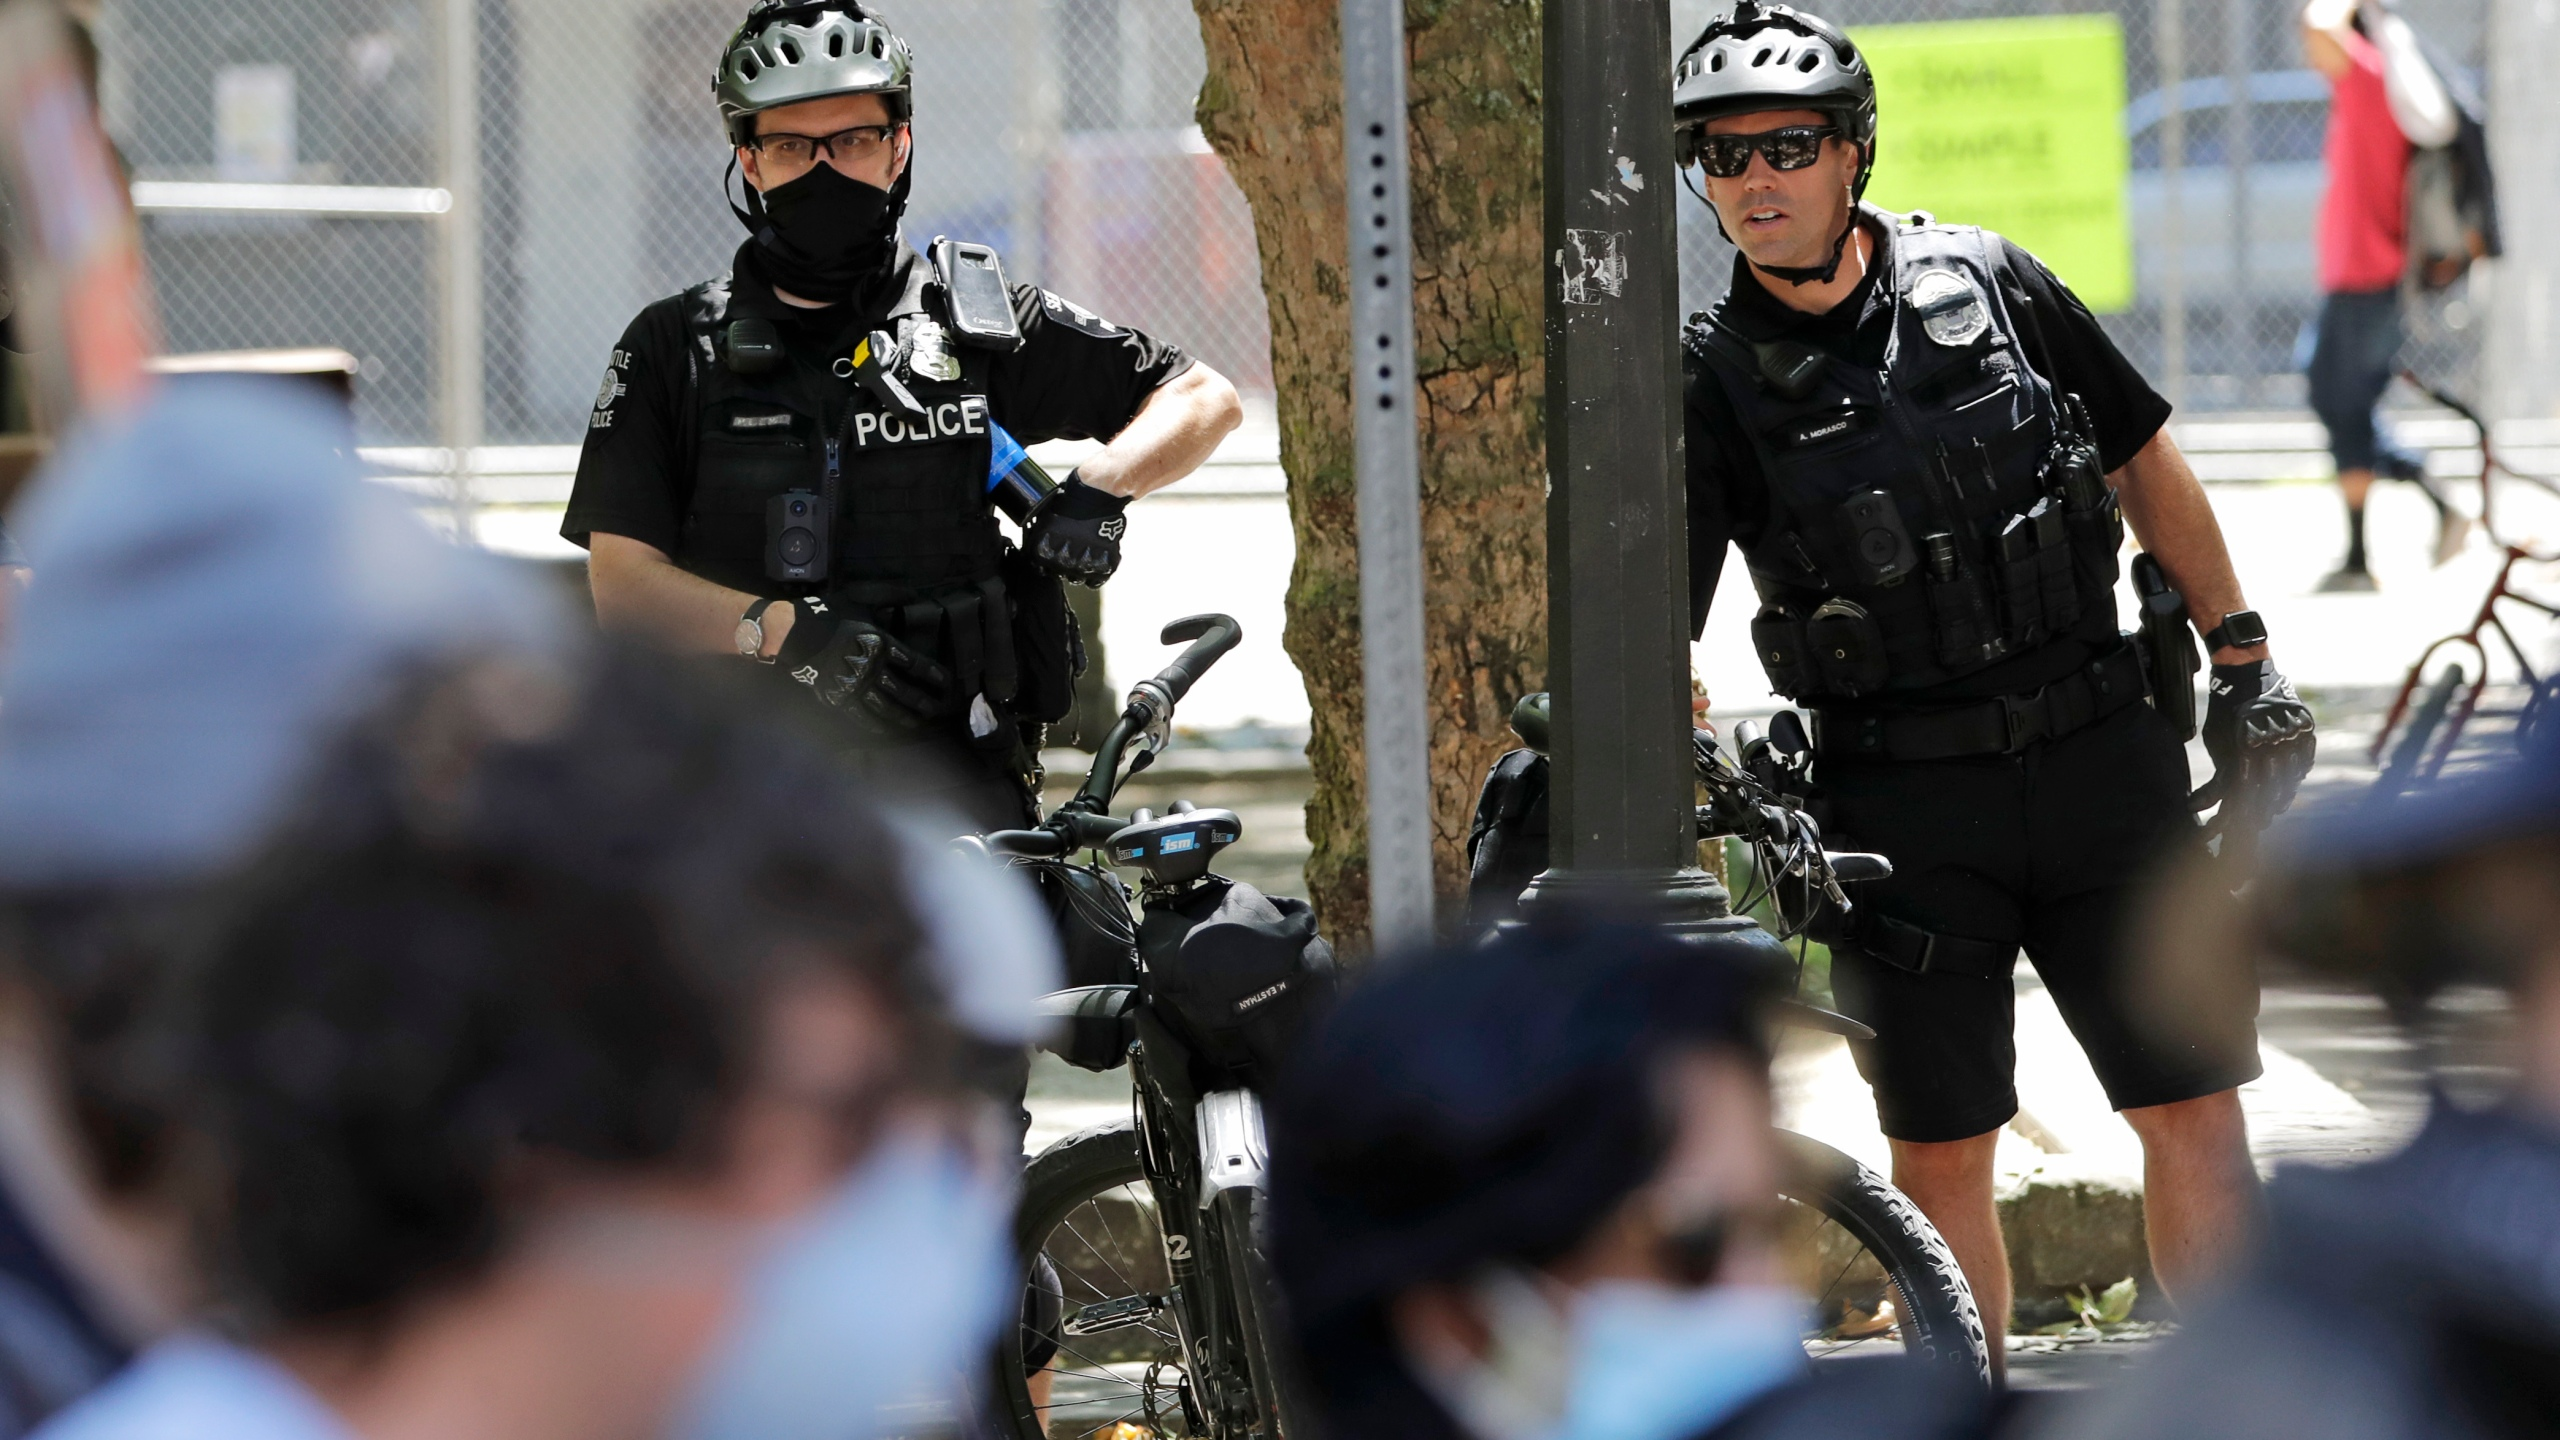 In this July 20, 2020, file photo, police officers look on at protesters in Seattle. (AP Photo/Elaine Thompson, File)